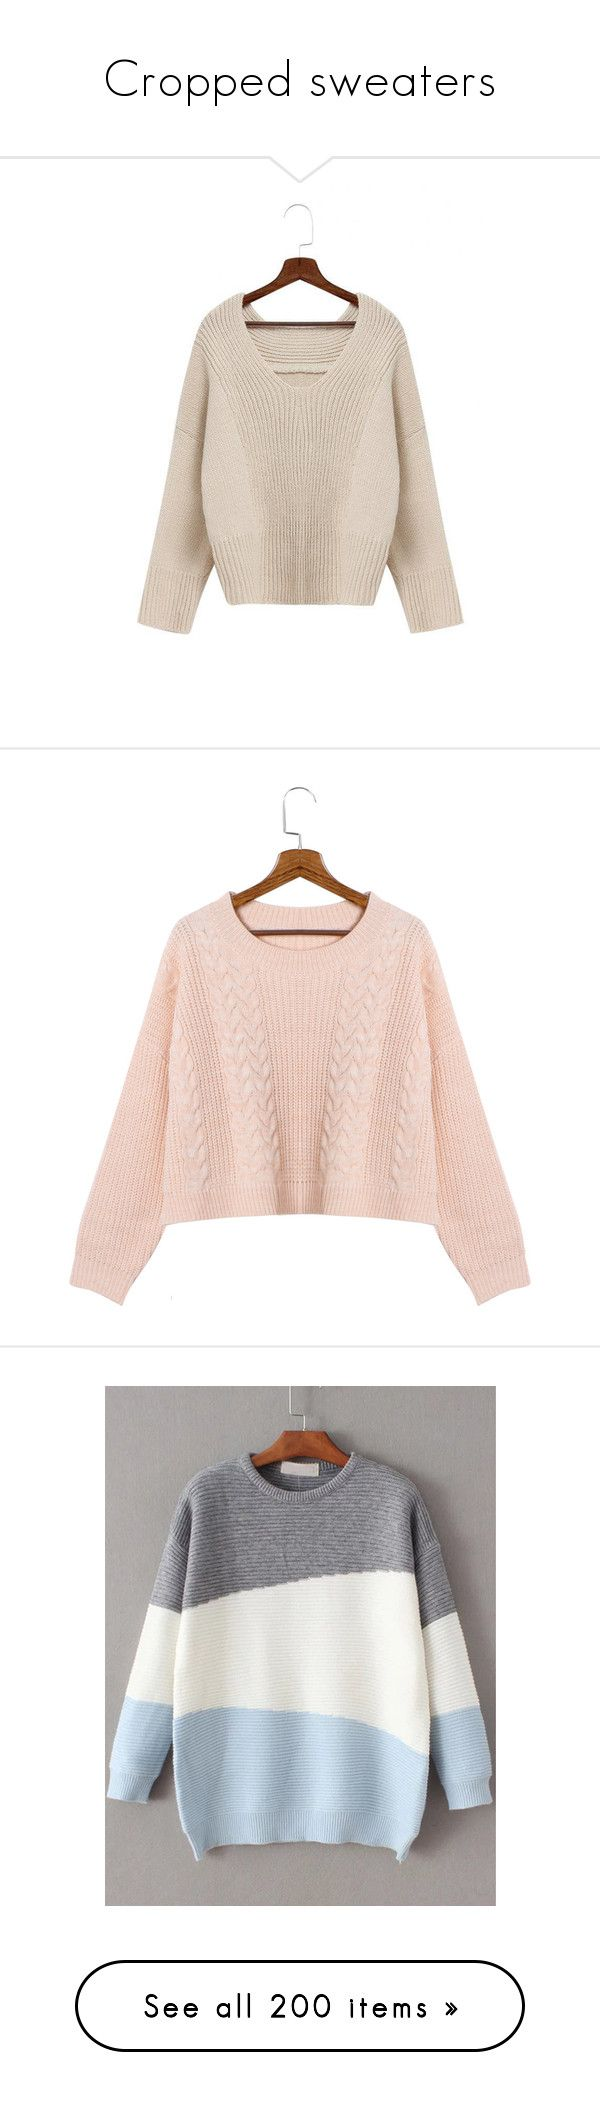 """""""Cropped sweaters"""" by stellacolor21 ❤ liked on Polyvore featuring tops, sweaters, beige, pink knit sweater, v-neck sweater, beige knit sweater, loose knit sweater, loose fitting sweaters, yoins and pink"""